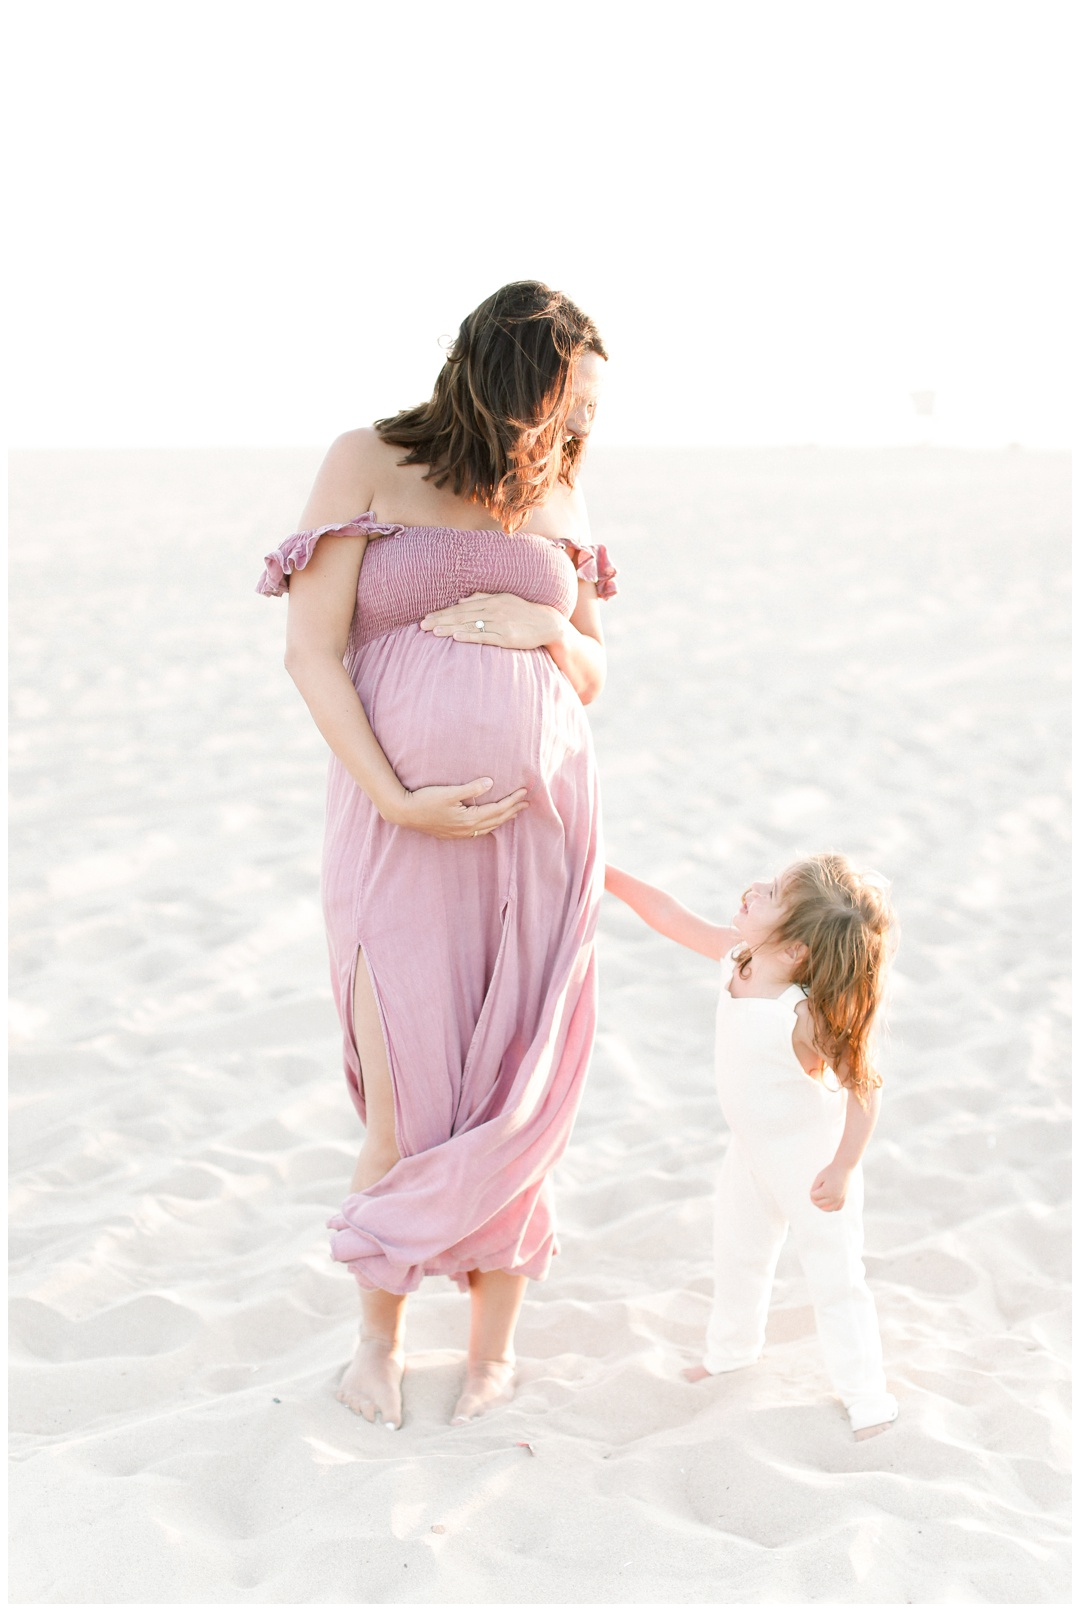 Newport_Beach_Maternity_Photographer_Newport_Beach_Newborn_Photography_Orange_County_Newborn_Photographer_Cori_Kleckner_Photography_Orange_County_in-home_Photography__2140.jpg